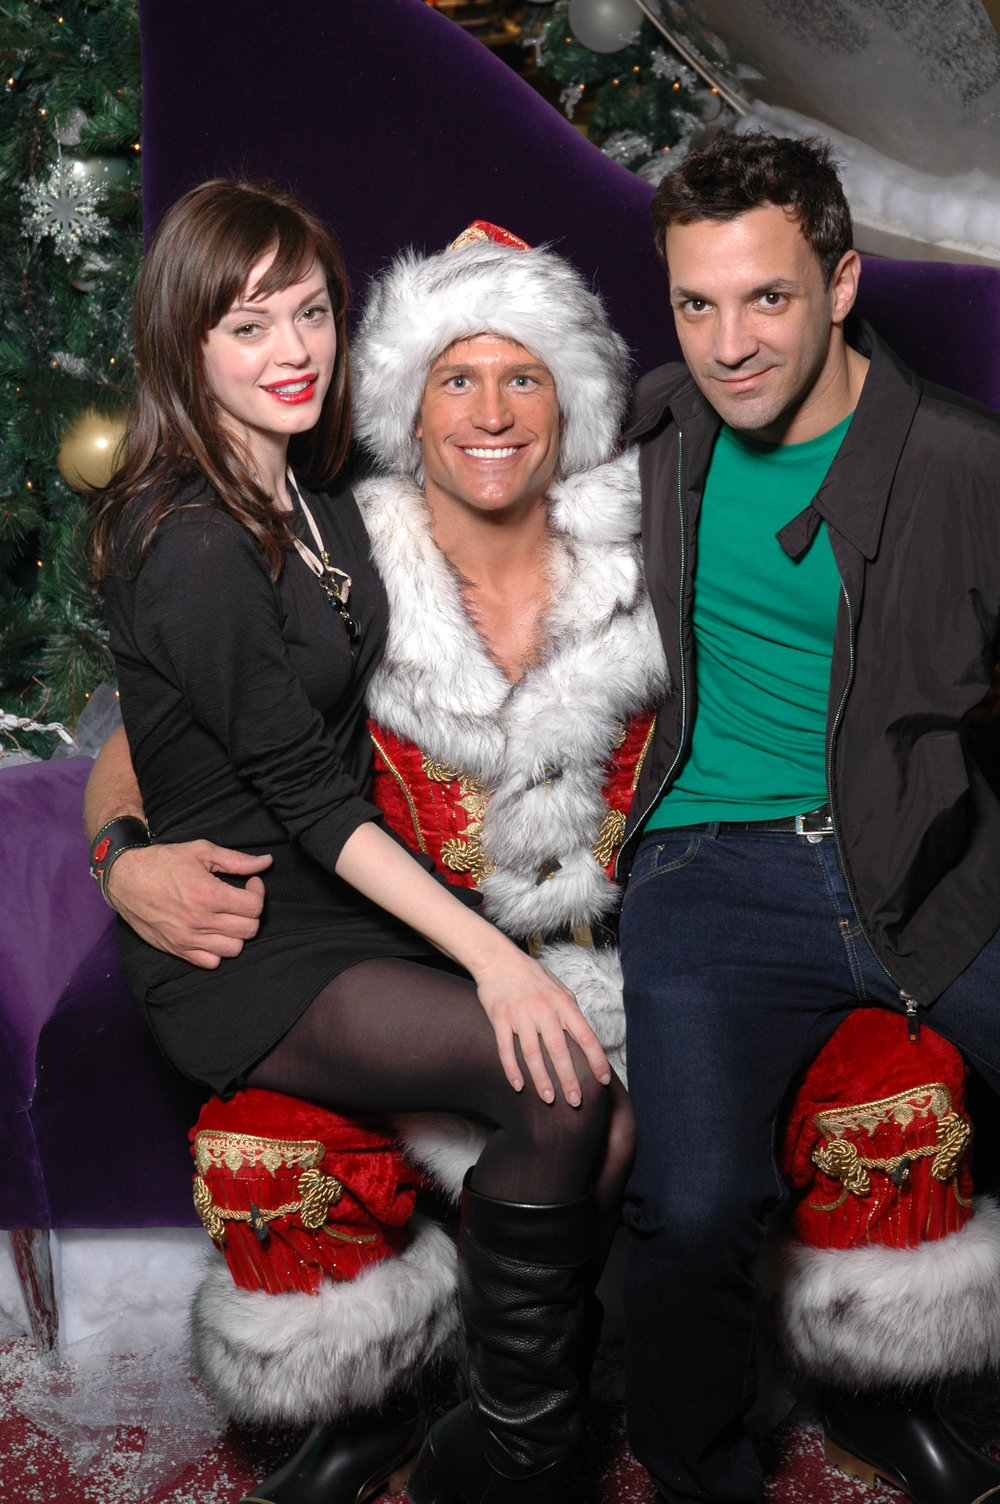 Client: The Beverly Center Hunky Santa (Kyle Shaw) with Rose McGowan +1